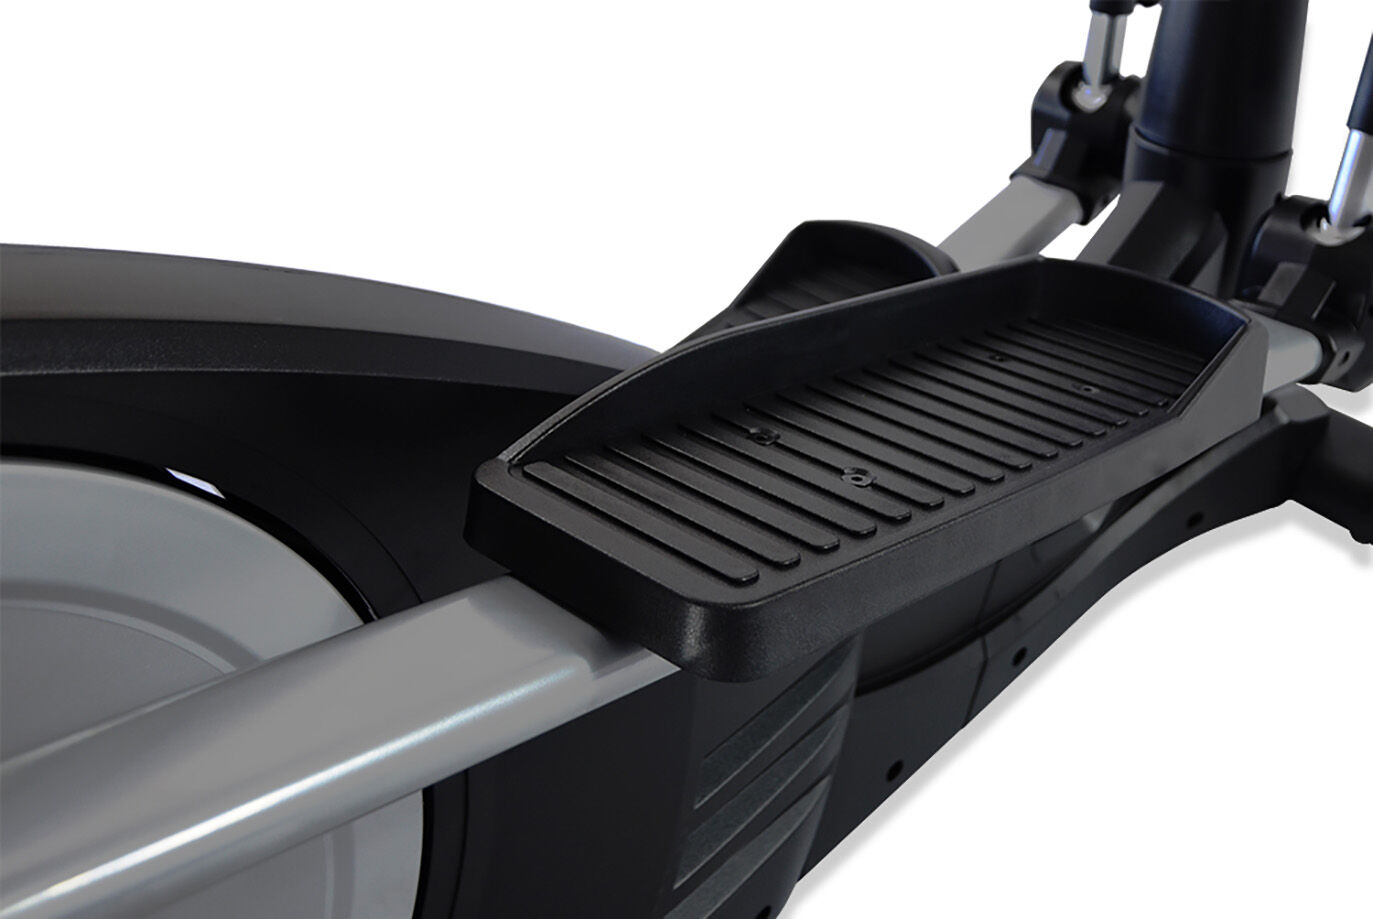 Cross Trainer Pedals on the JTX Tri-Fit